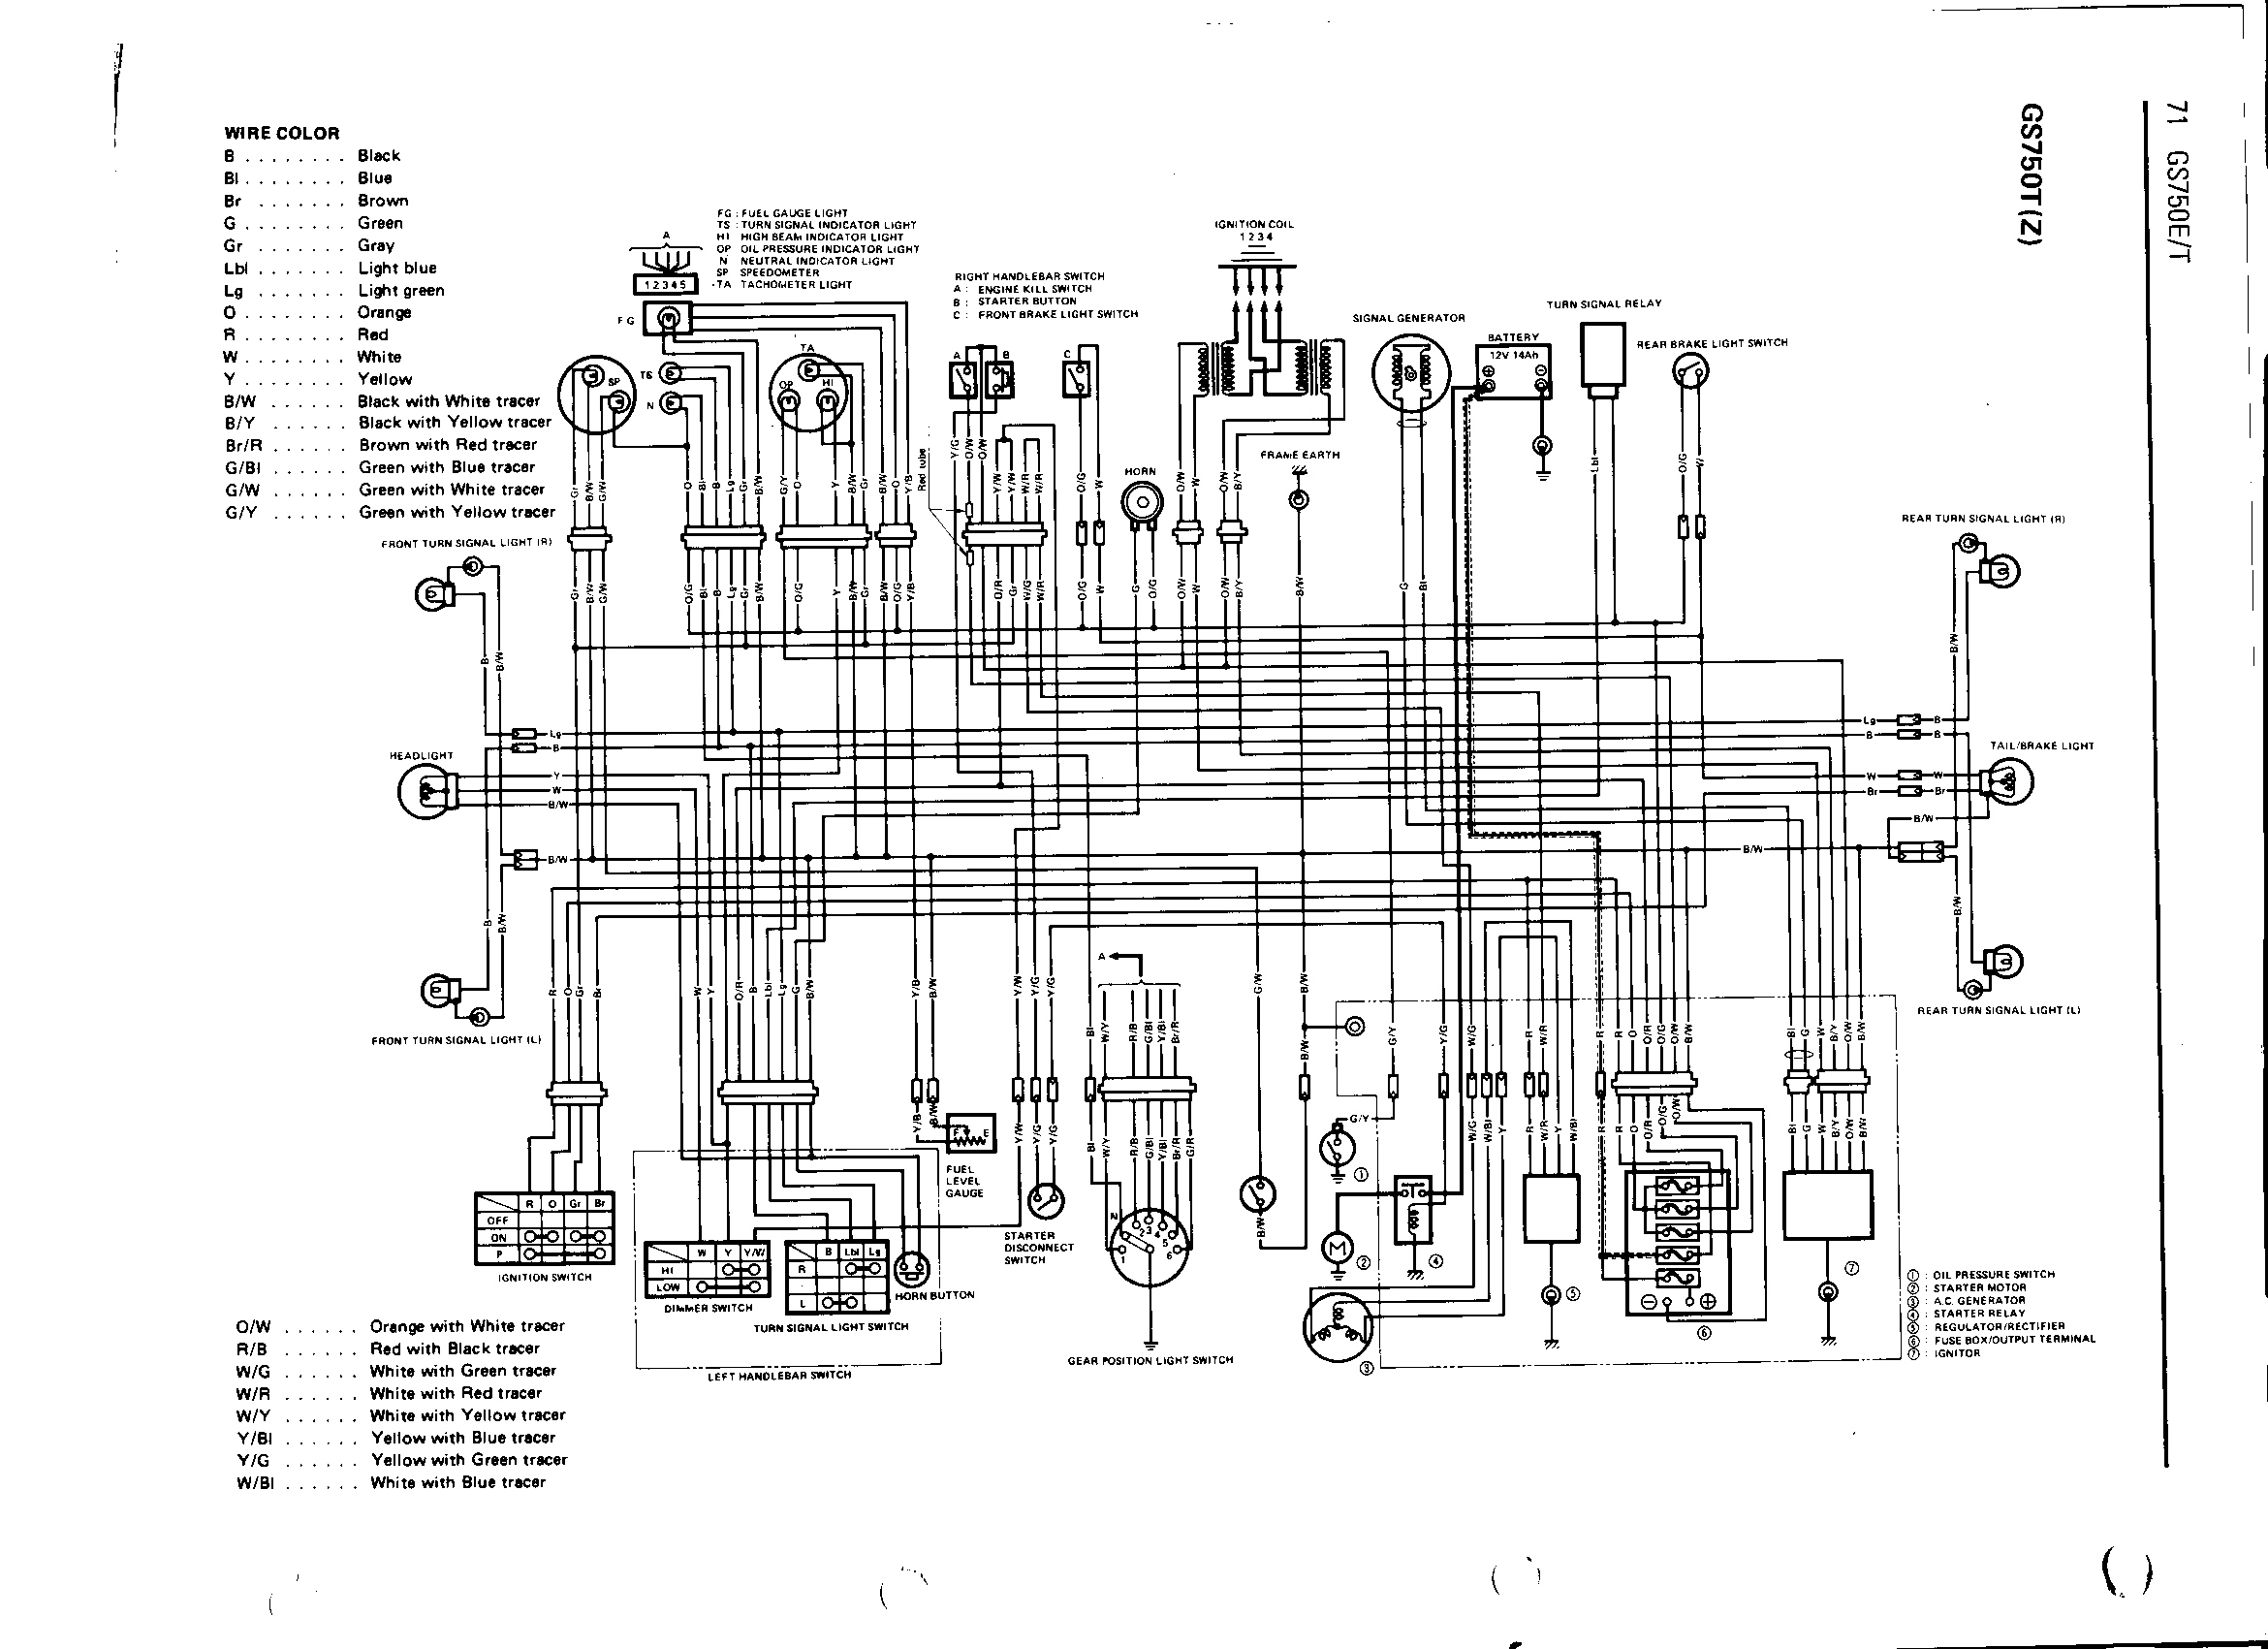 Suzuki Gs 750 Wiring Diagram